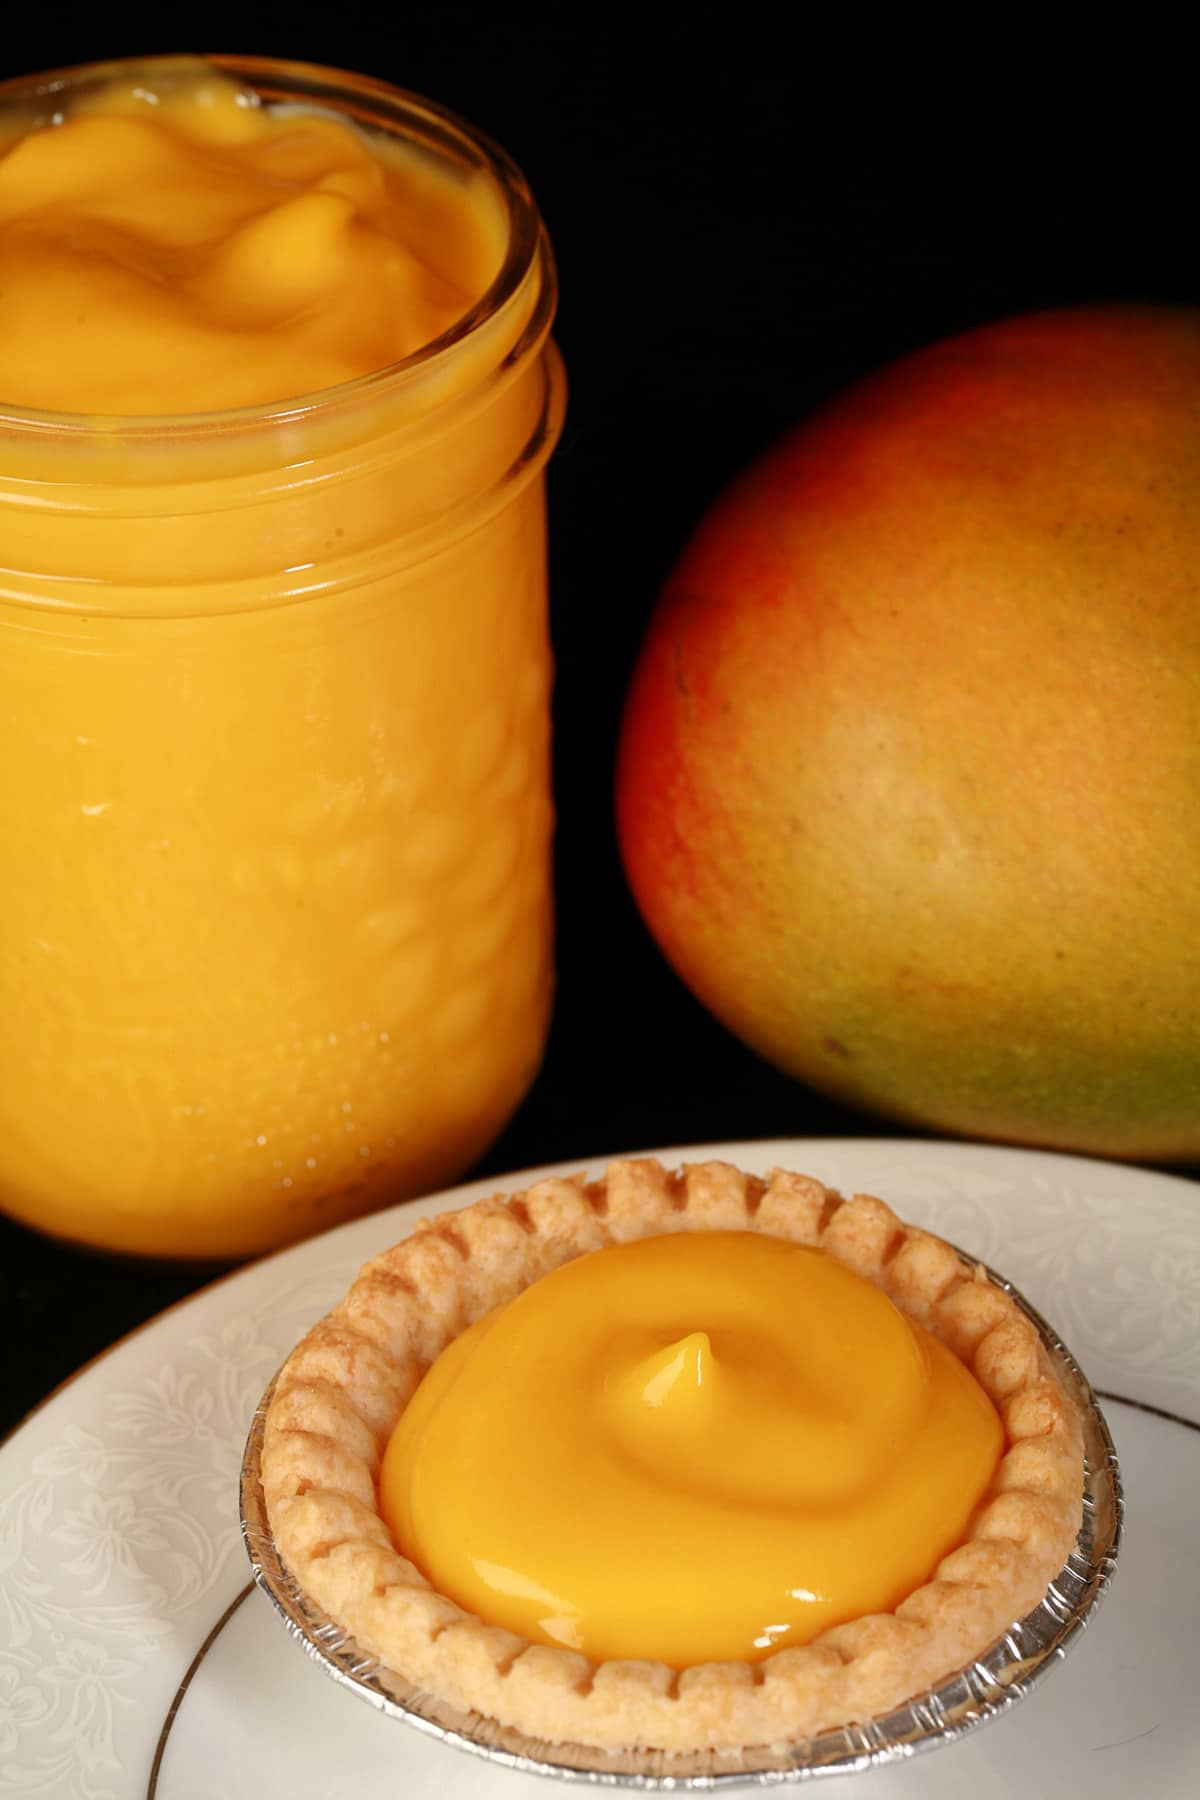 A mango tart on a plate, with a jar of mango curd and a mango behind the plate.